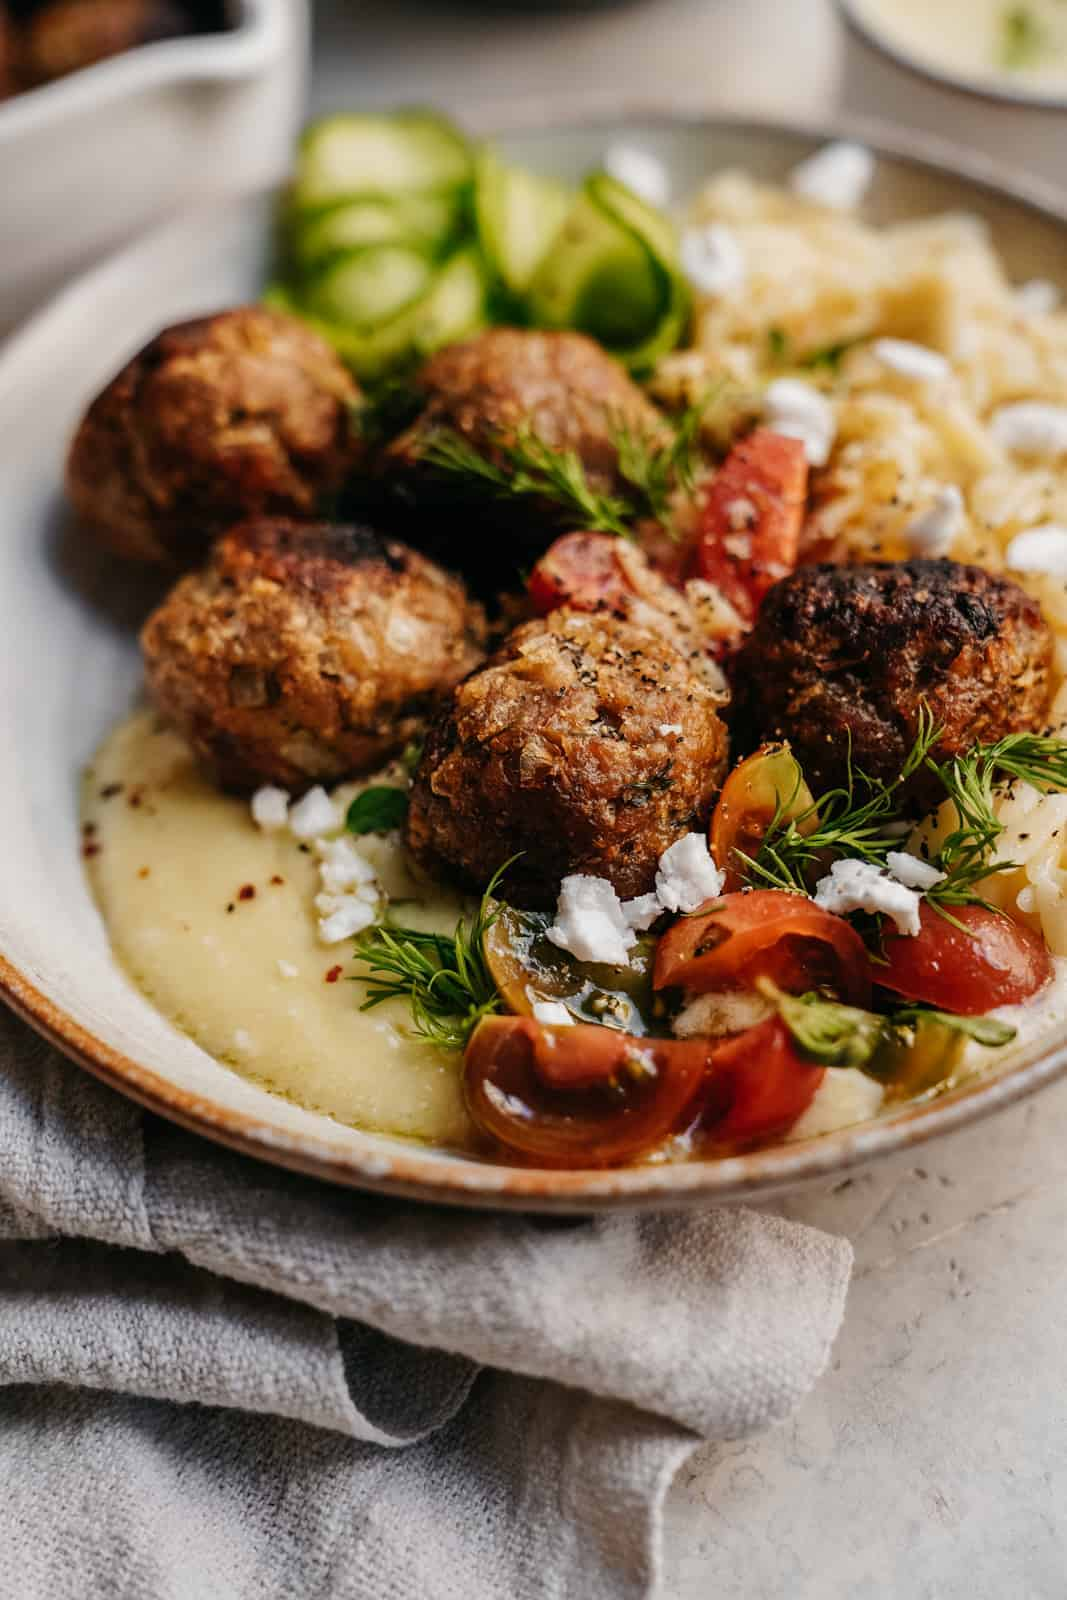 Close-up of Greek meatballs on a dish with creamy hummus and fresh herbs.